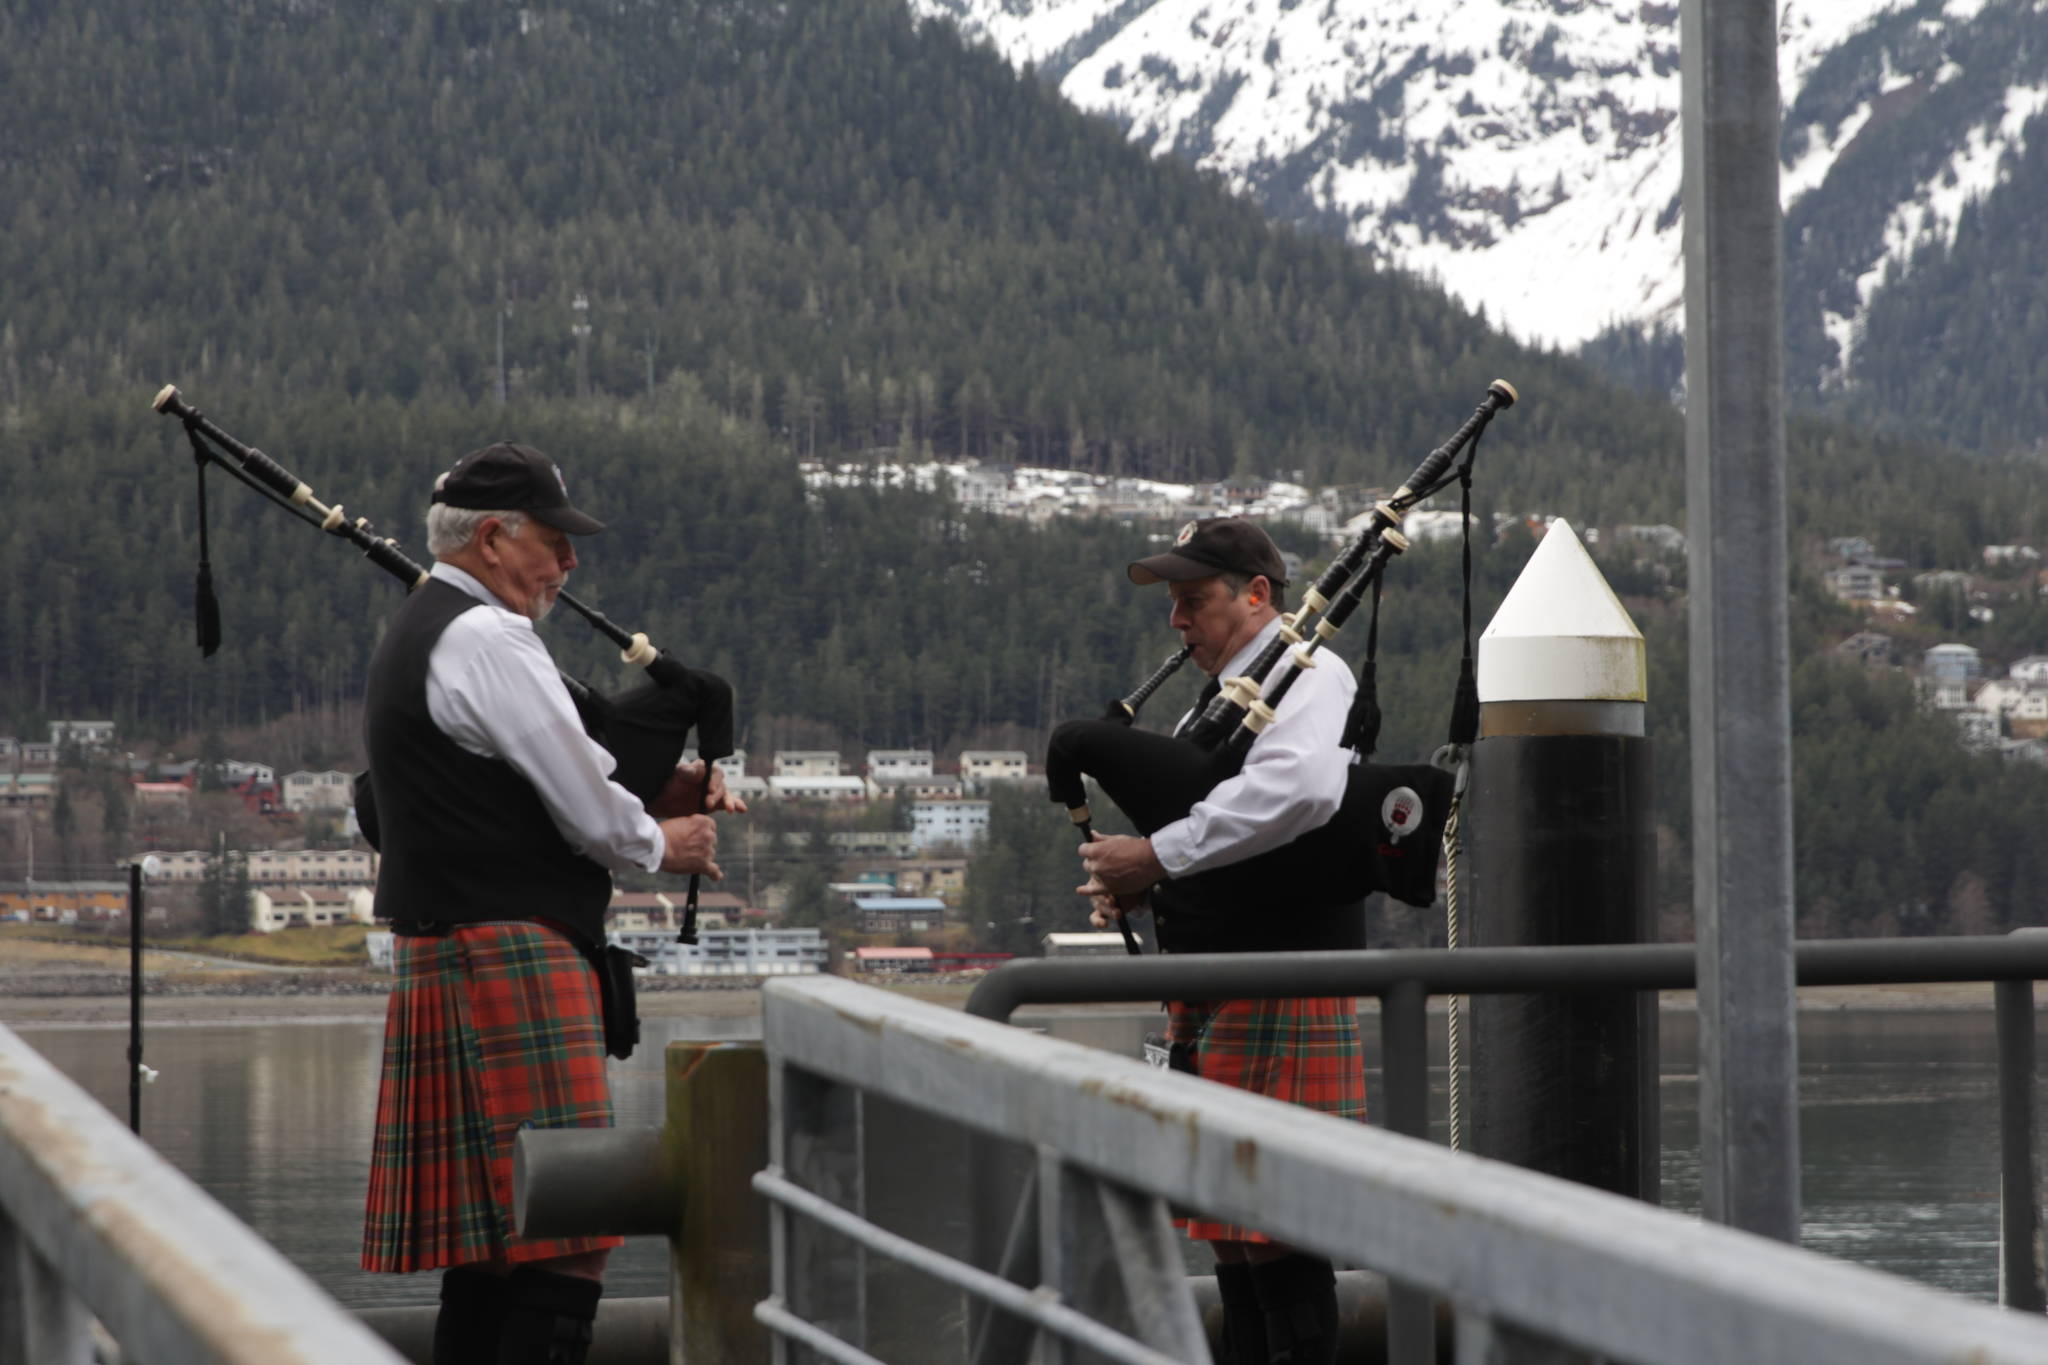 Members of the City of Juneau Pipe Band play their bagpipes during the 31st annual Blessing of the Fleet and Reading of Names at the Alaska Commercial Fishermen's Memorial in Juneau on May 1, 2021. (Michael S. Lockett / Juneau Empire)